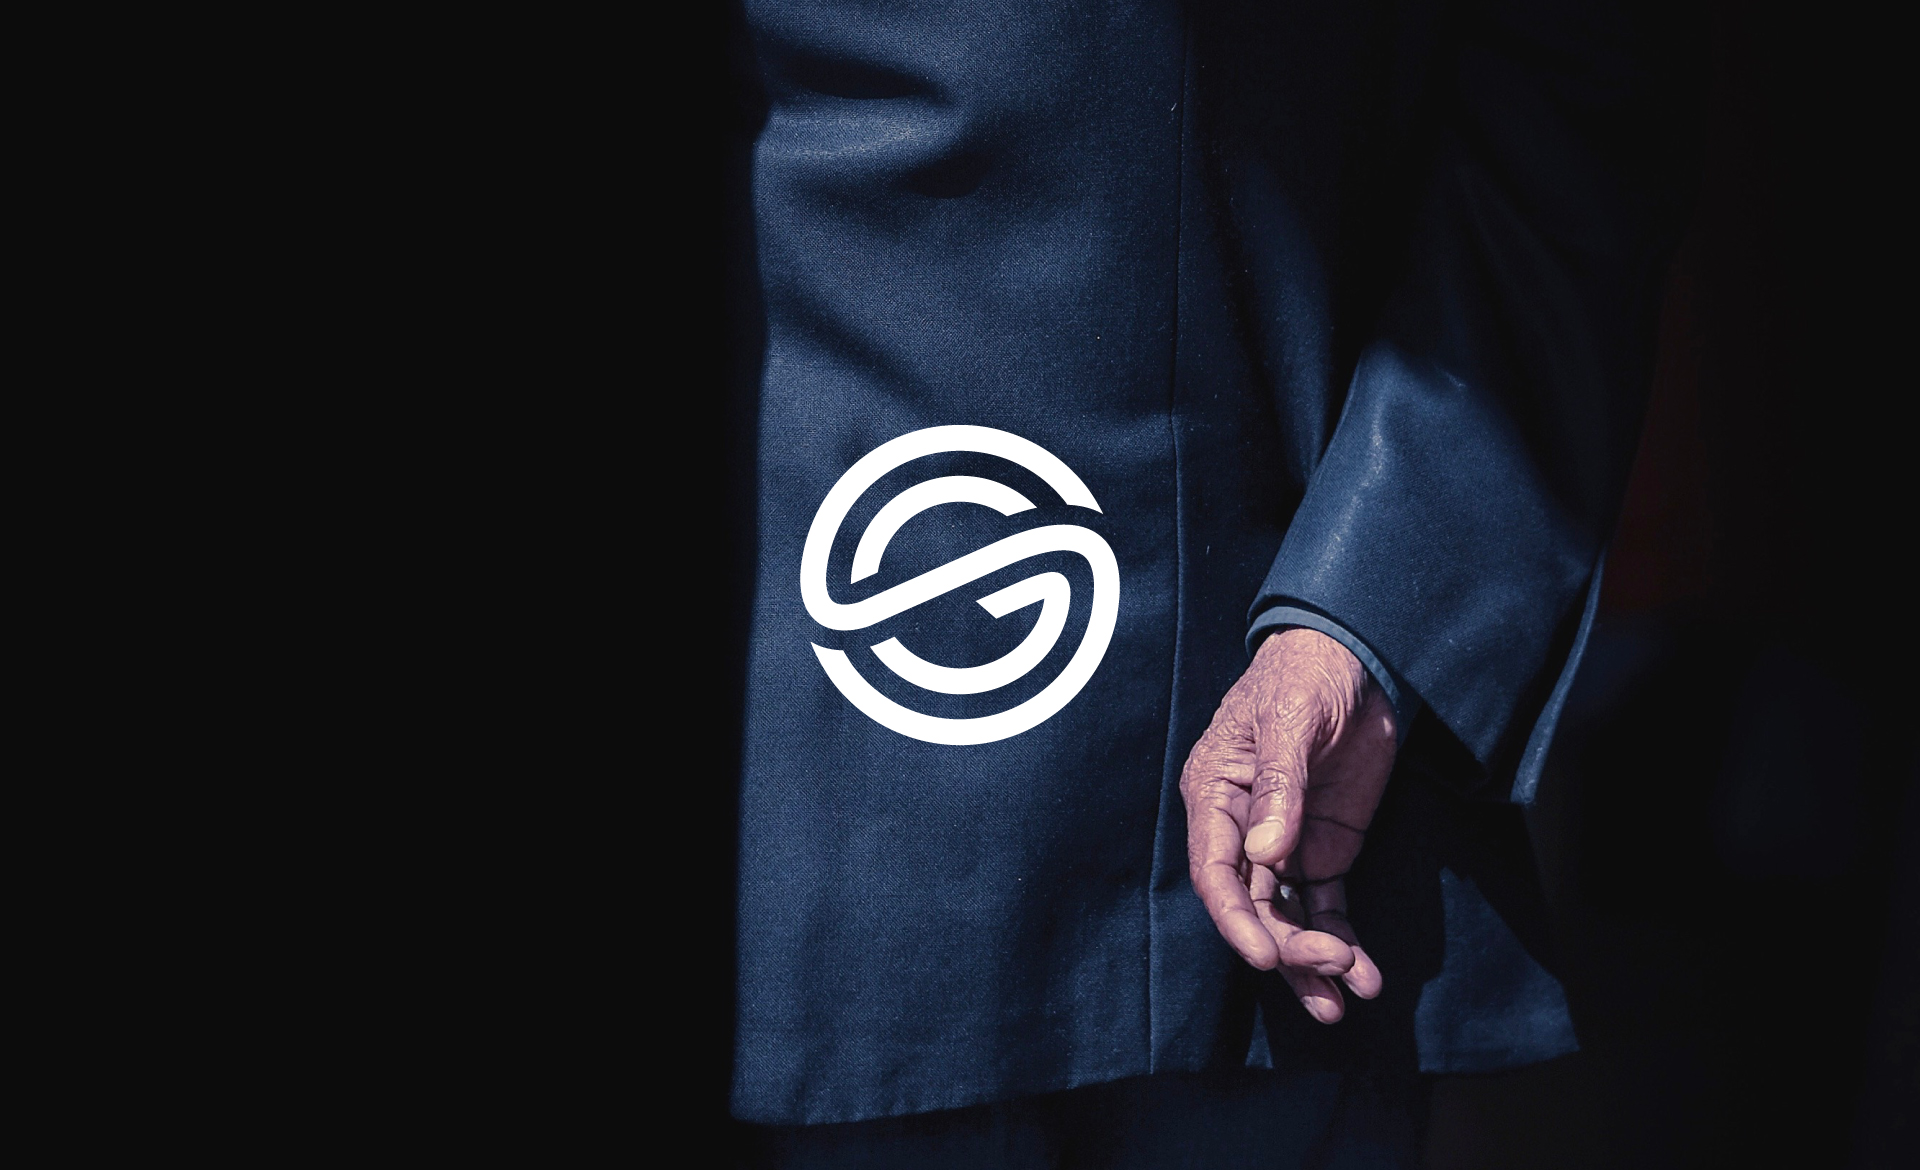 Logos&Marks_GentlemensSelection